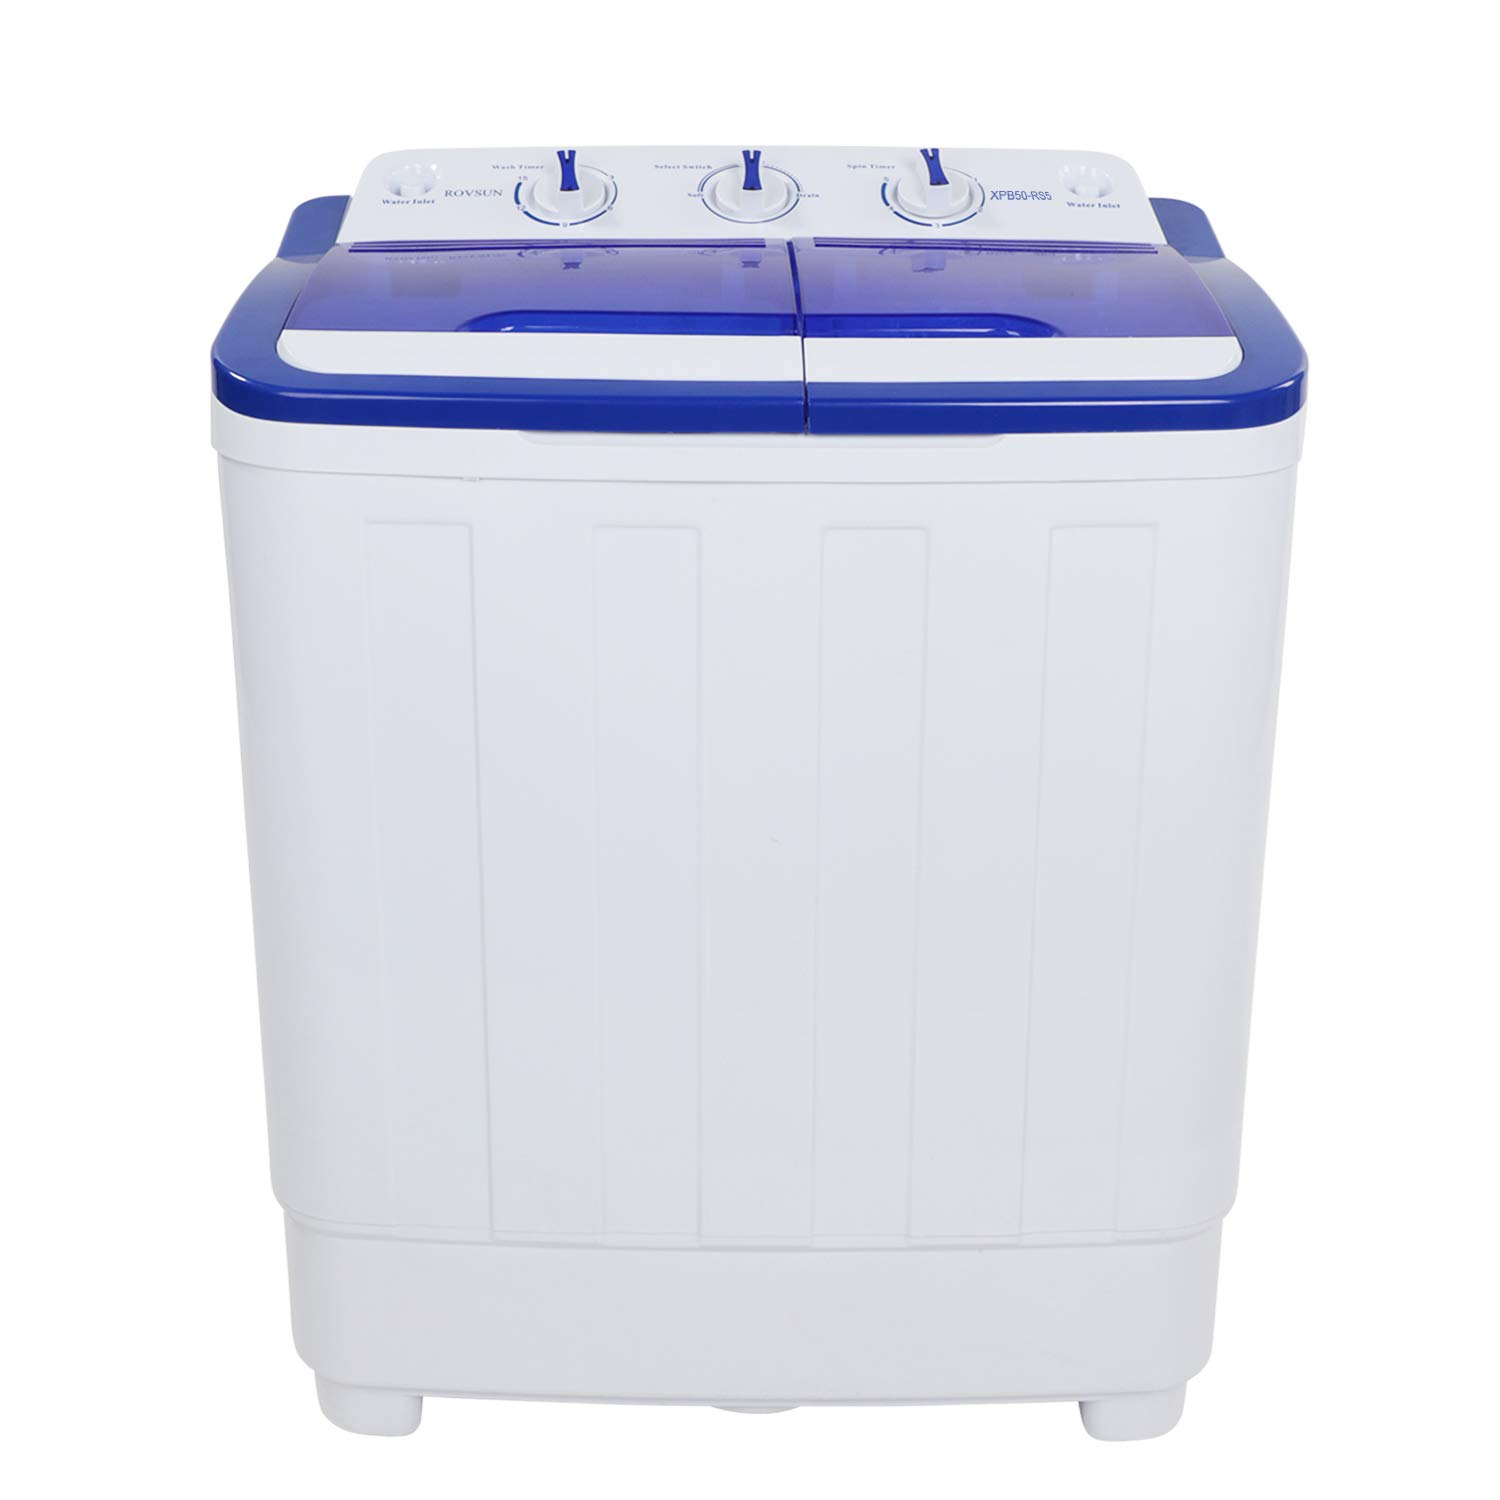 ROVSUN Portable Washing Machine 13.4LBS Capacity with Twin Tub,Electric Compact Mini Washer 23.2L x 13.9W x 26.5H Great for RV Camping Dorms College Rooms Spin Cycle w//Hose